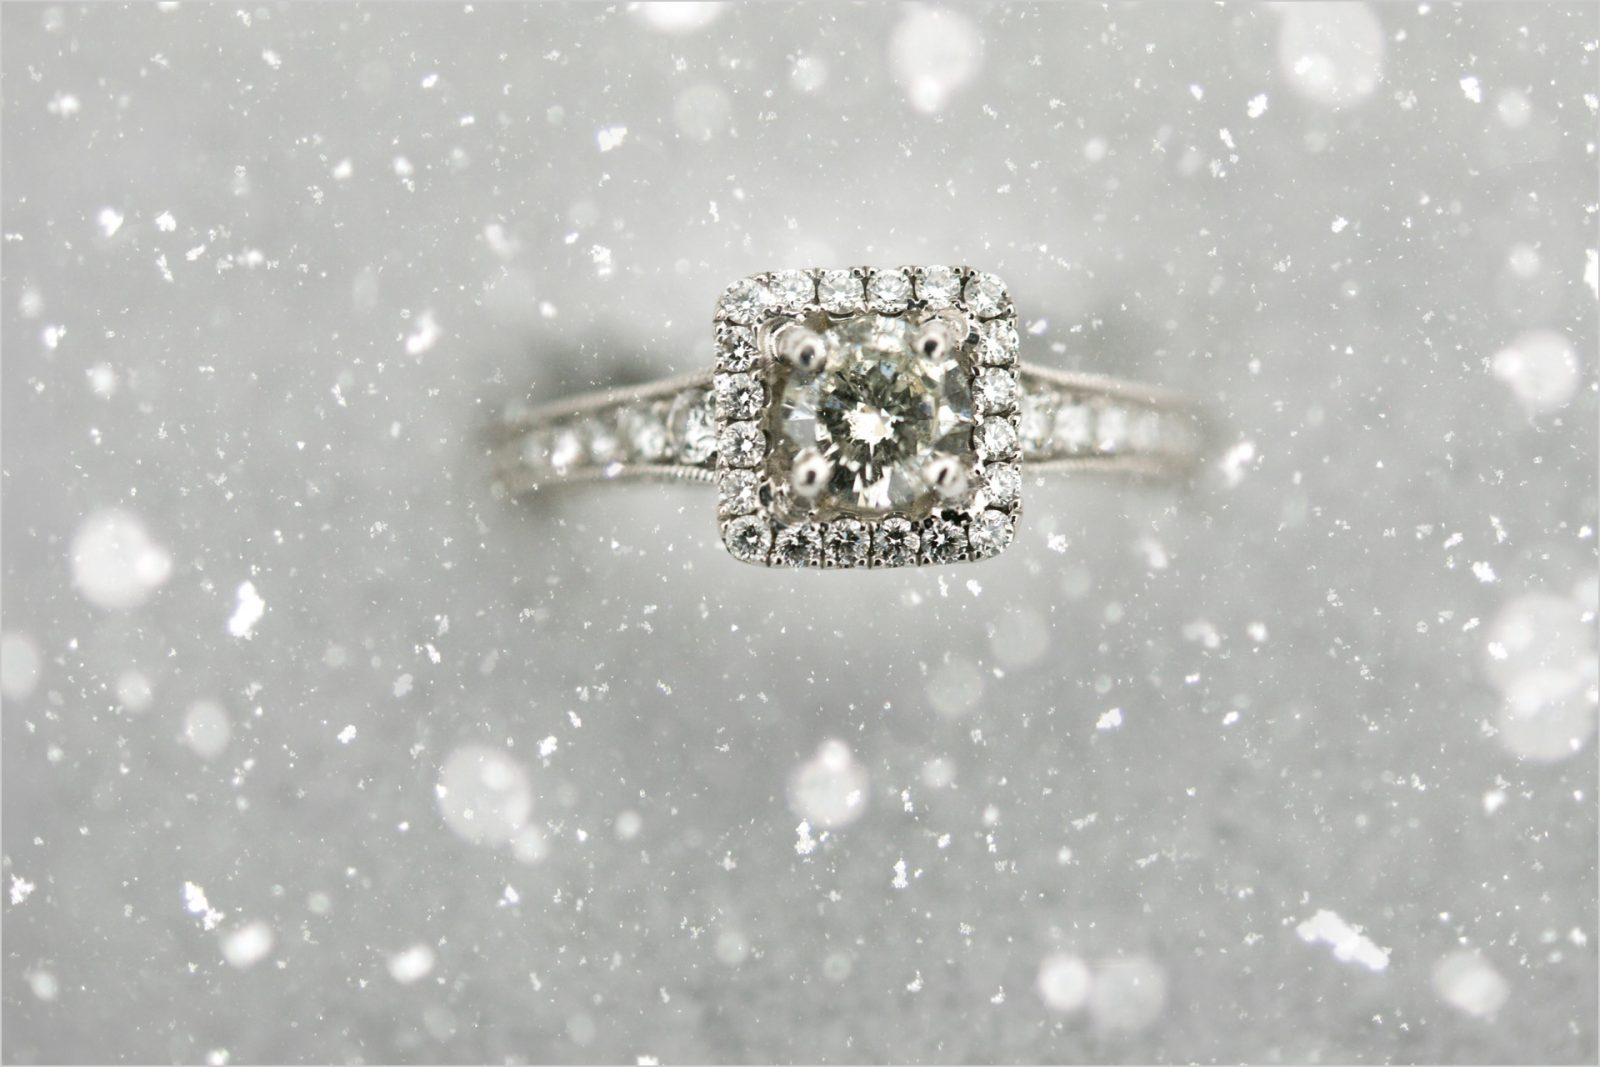 Ault Park Snow Engagement ring, Ault Park Cincinnati Engagement